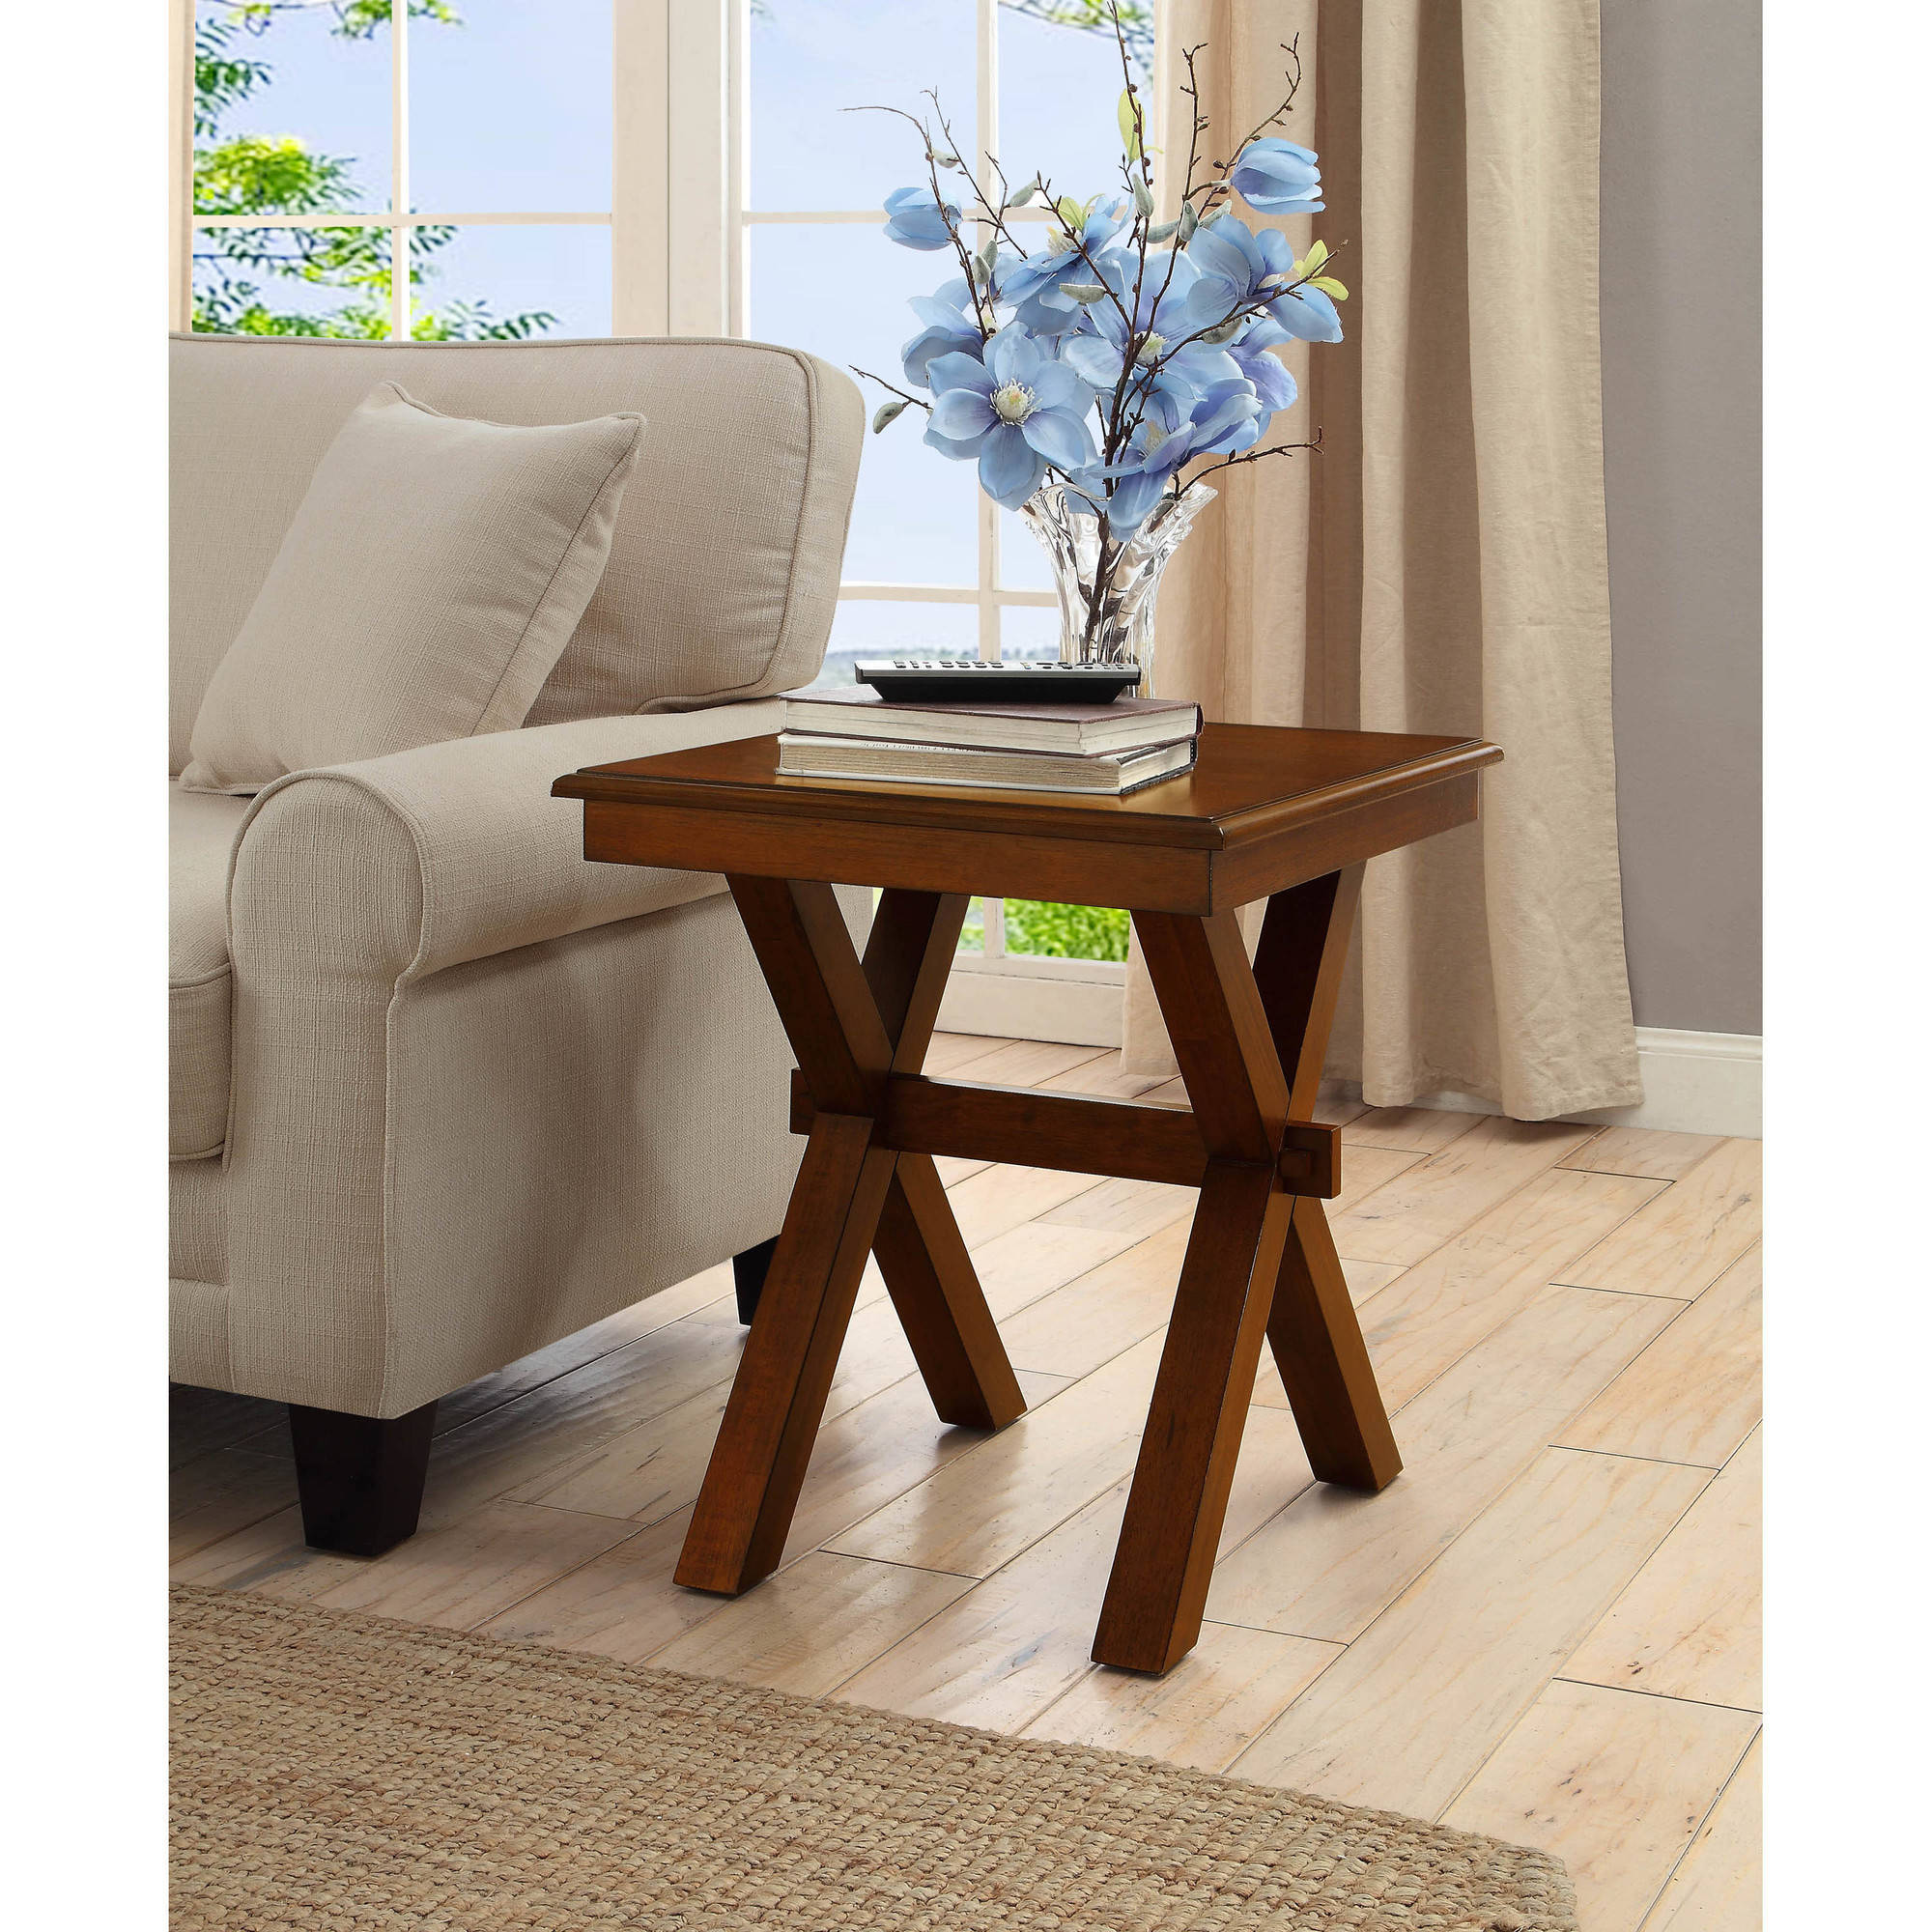 Better Homes & Gardens Maddox Crossing End Table, Cognac Finish